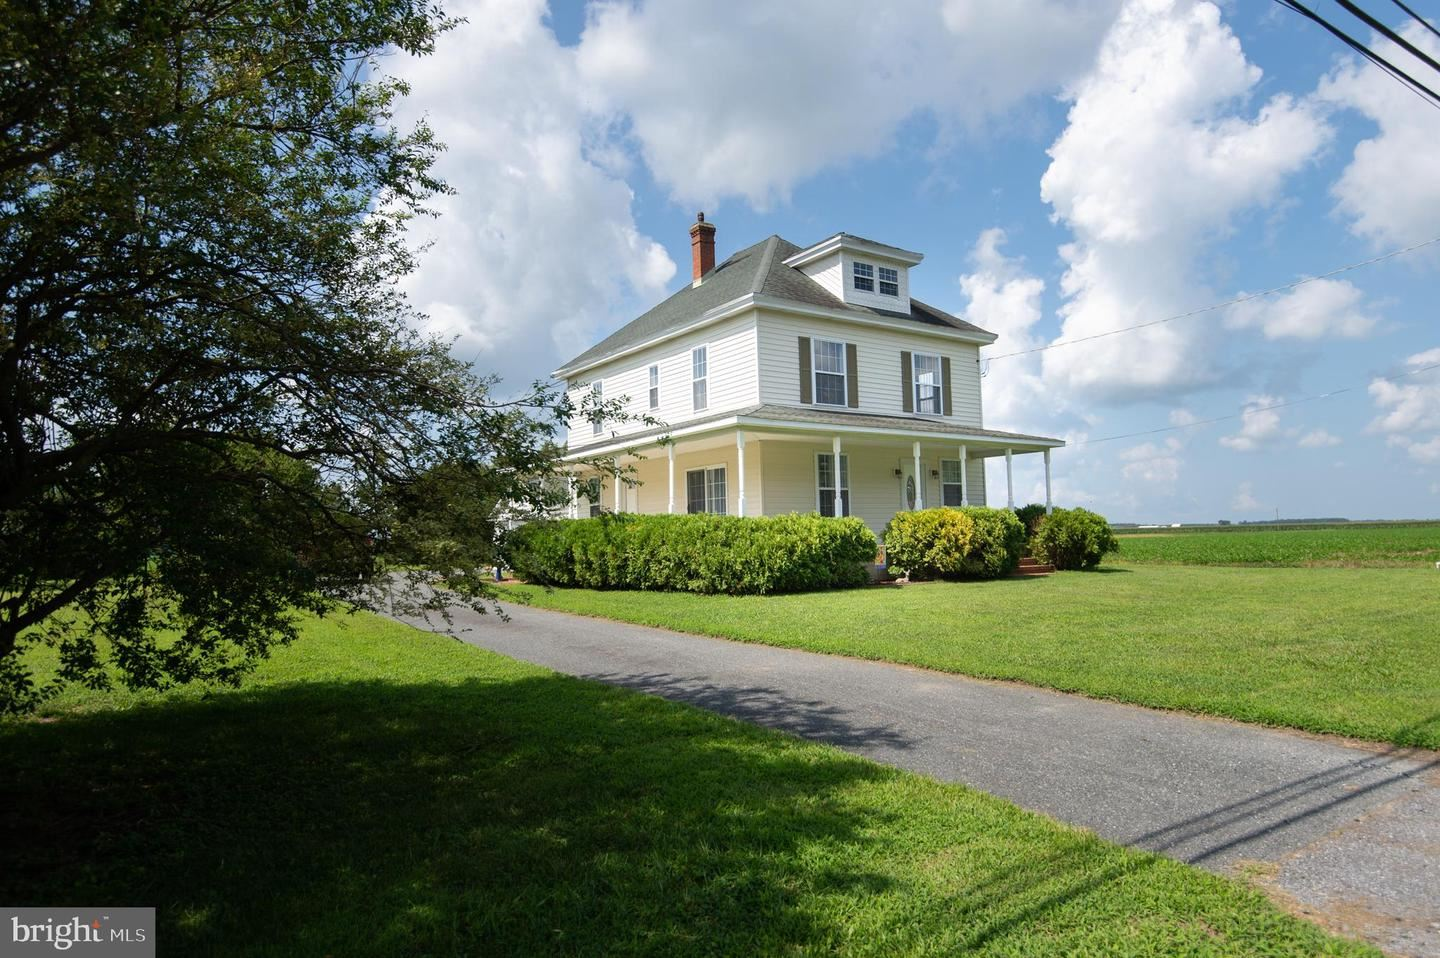 Photo of 4805 ENM-RHODESDALE, RHODESDALE, MD 21659 (MLS # MDDO125870)